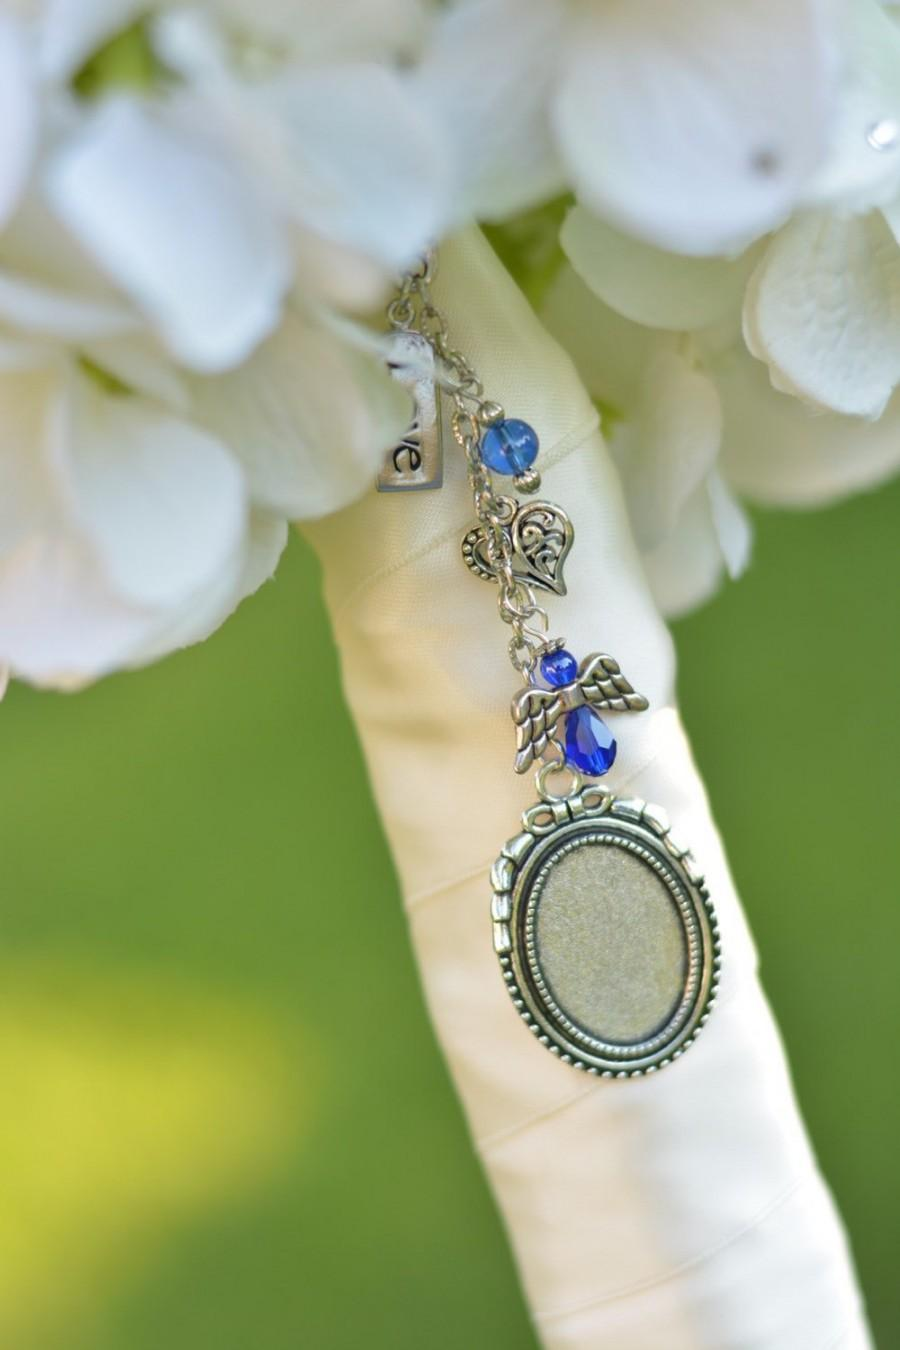 Свадьба - Something Blue Bouquet Picture Charm - Bridal Bouquet Charm -Wedding Bouquet Photo Charm - Something Blue - Bridal Gift - Bouquet Charm